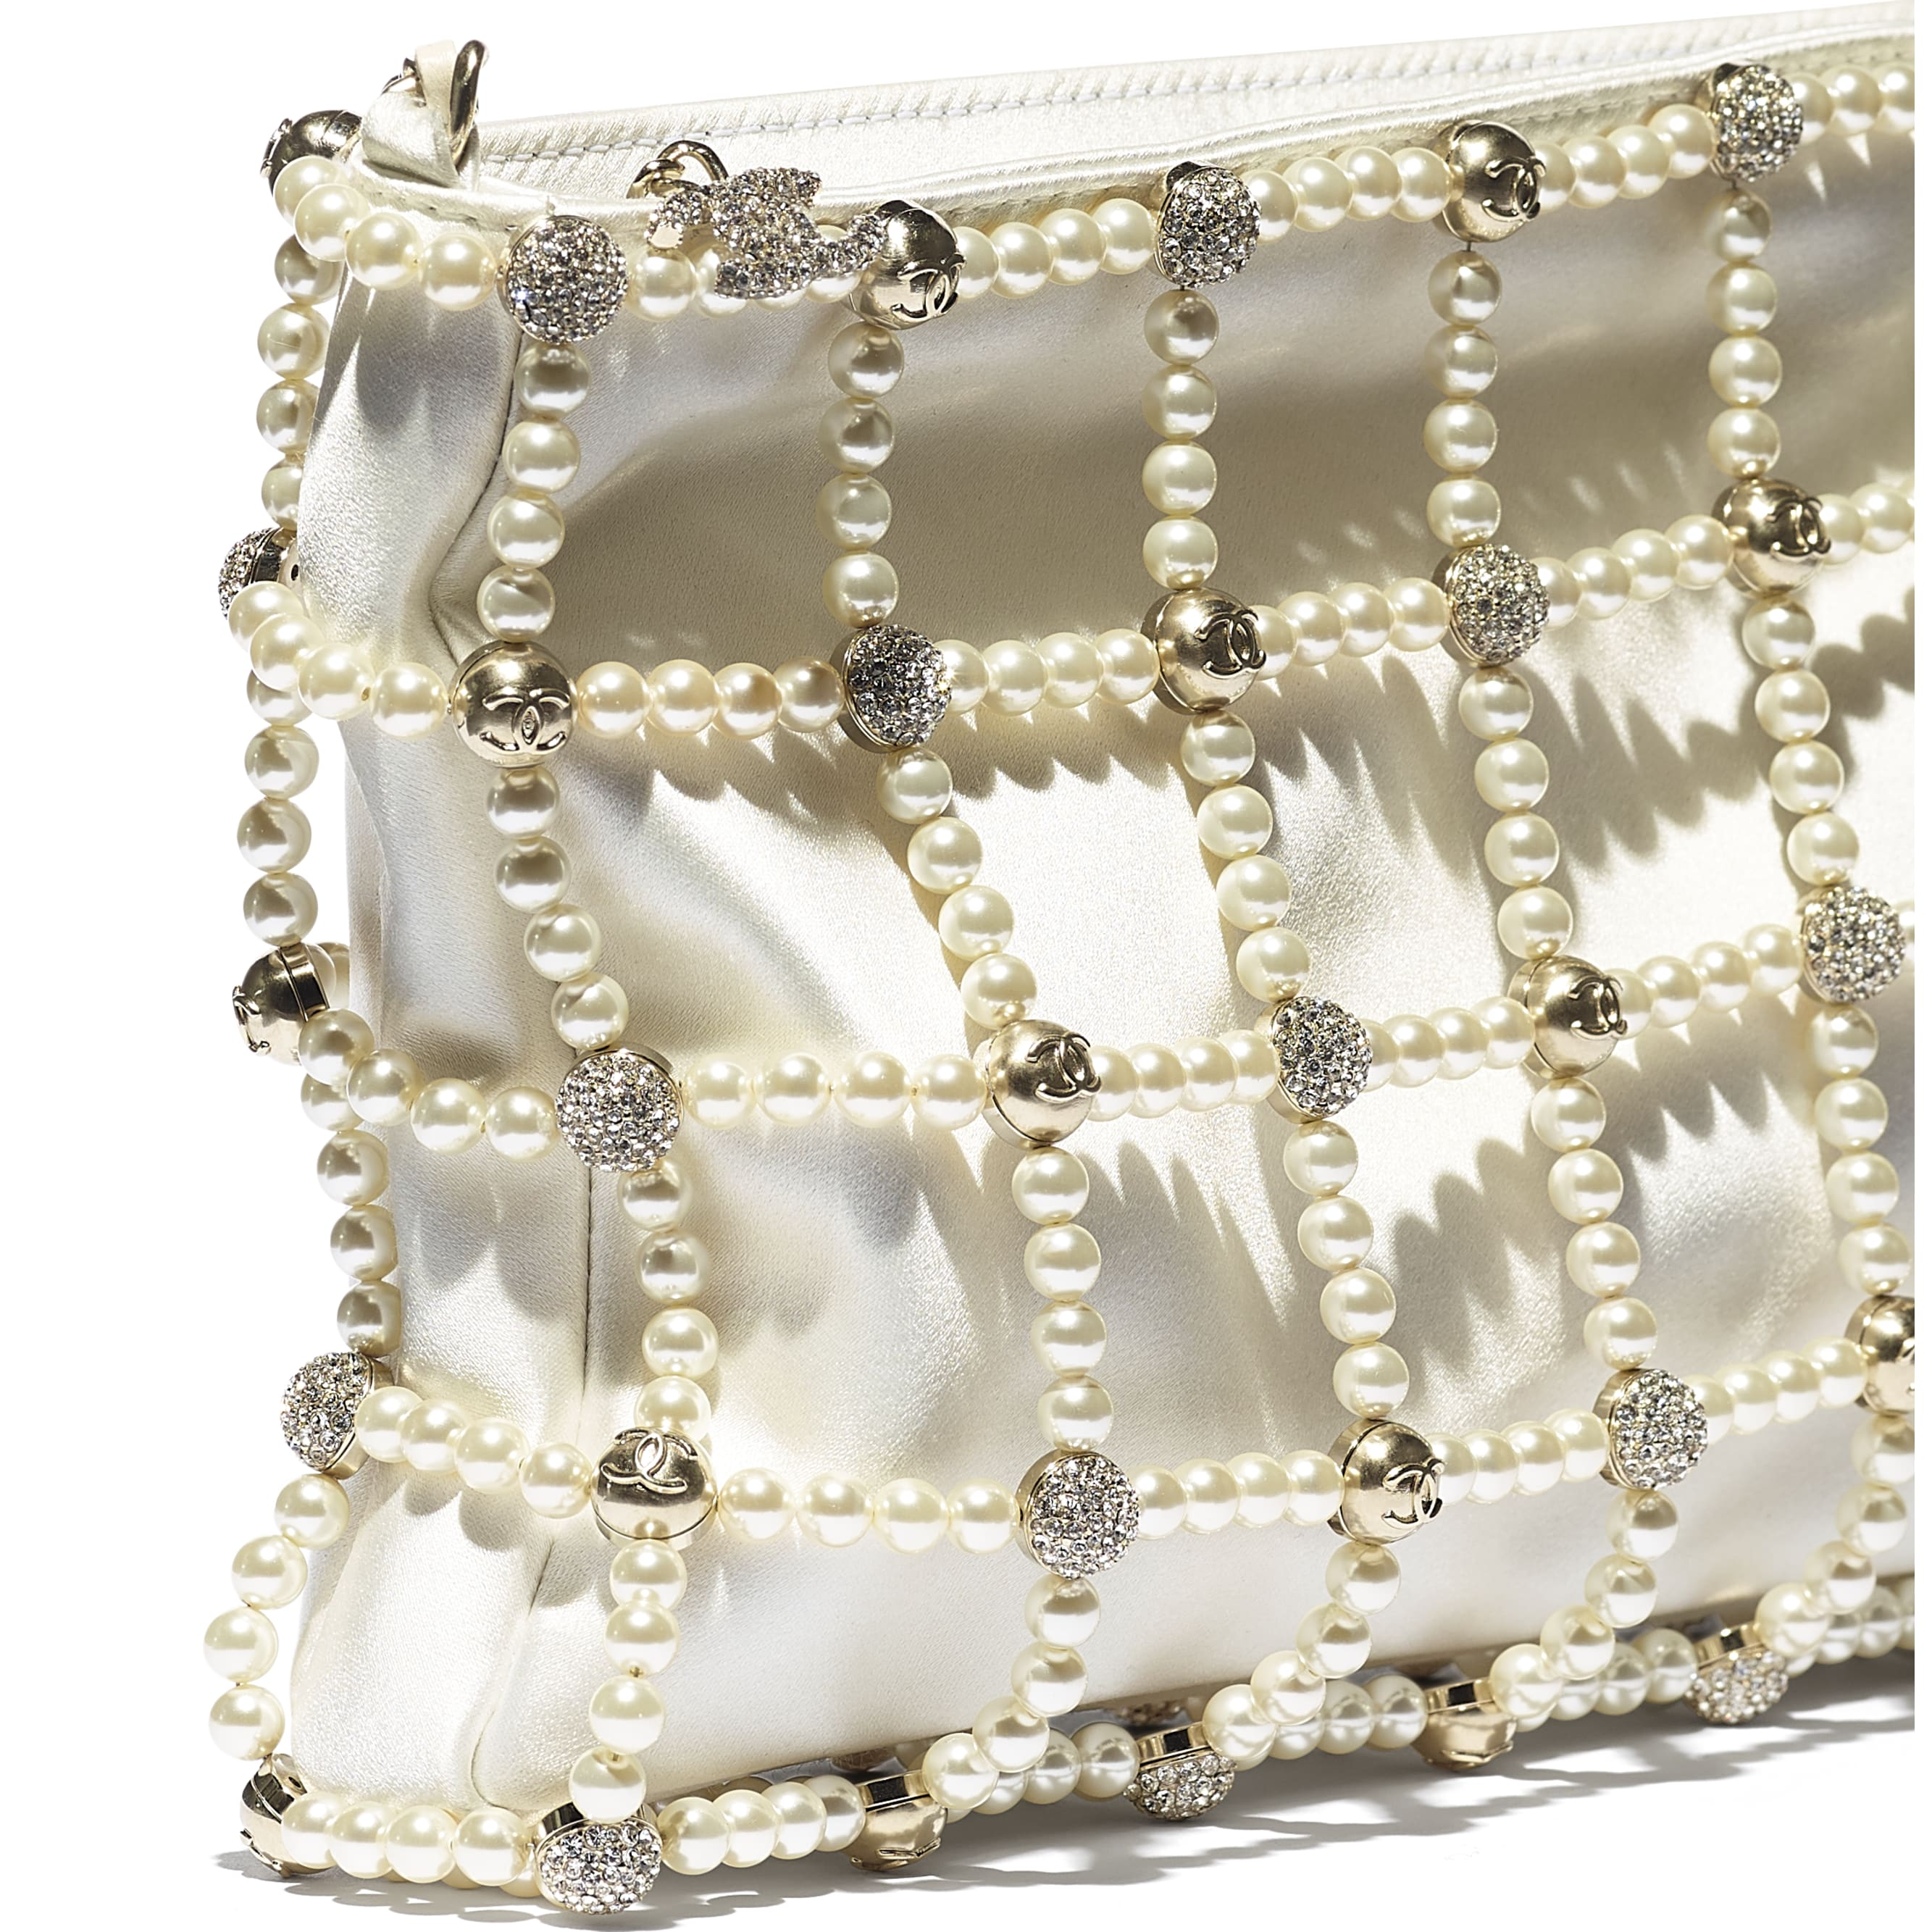 Clutch - White - Satin, Glass Pearls, Strass & Gold-Tone Metal - CHANEL - Extra view - see standard sized version